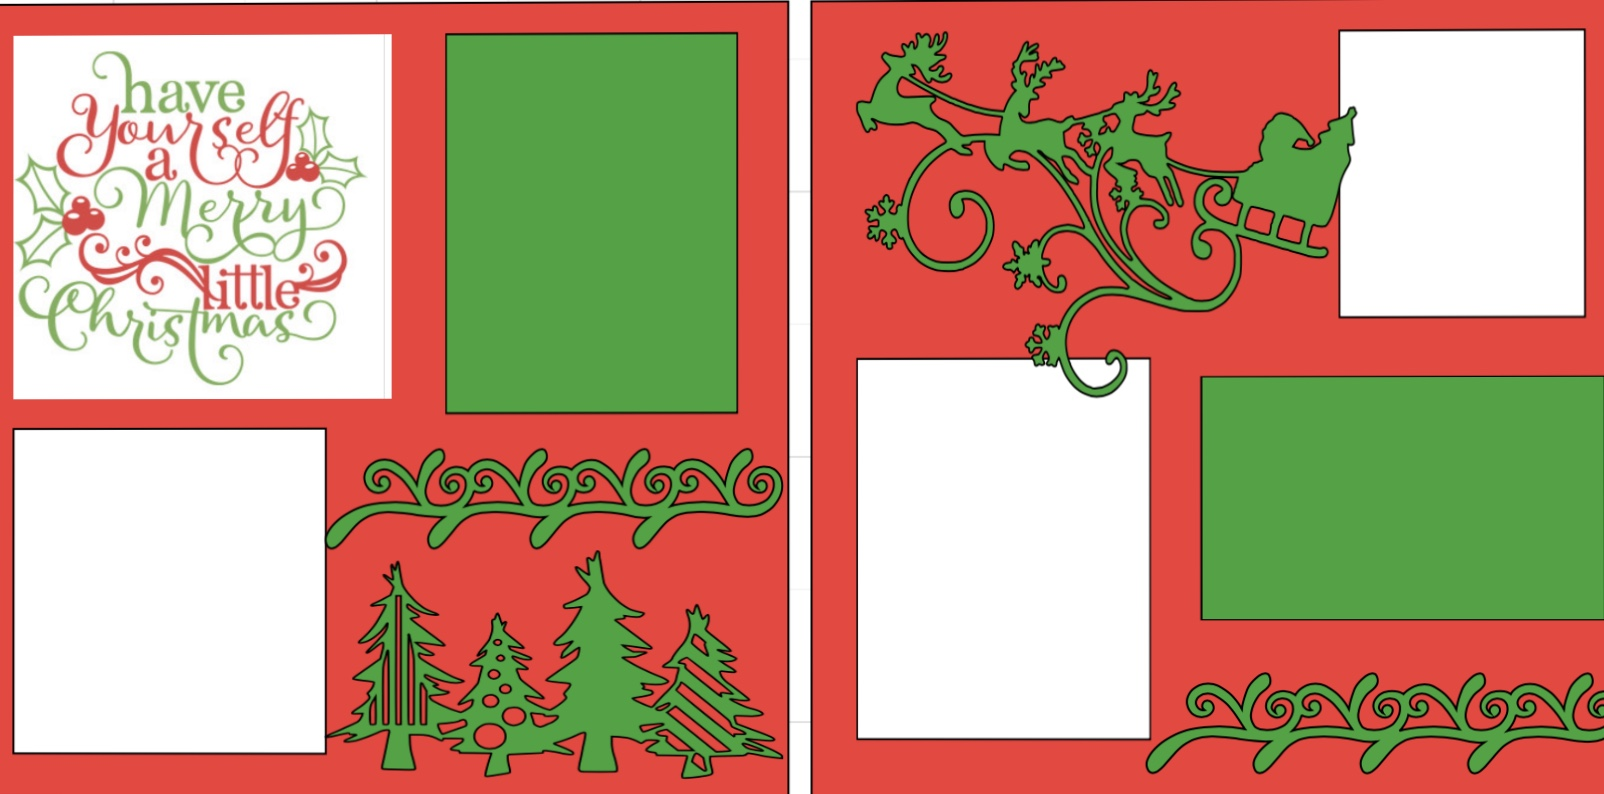 Have yourself a Merry little Christmas -page kit